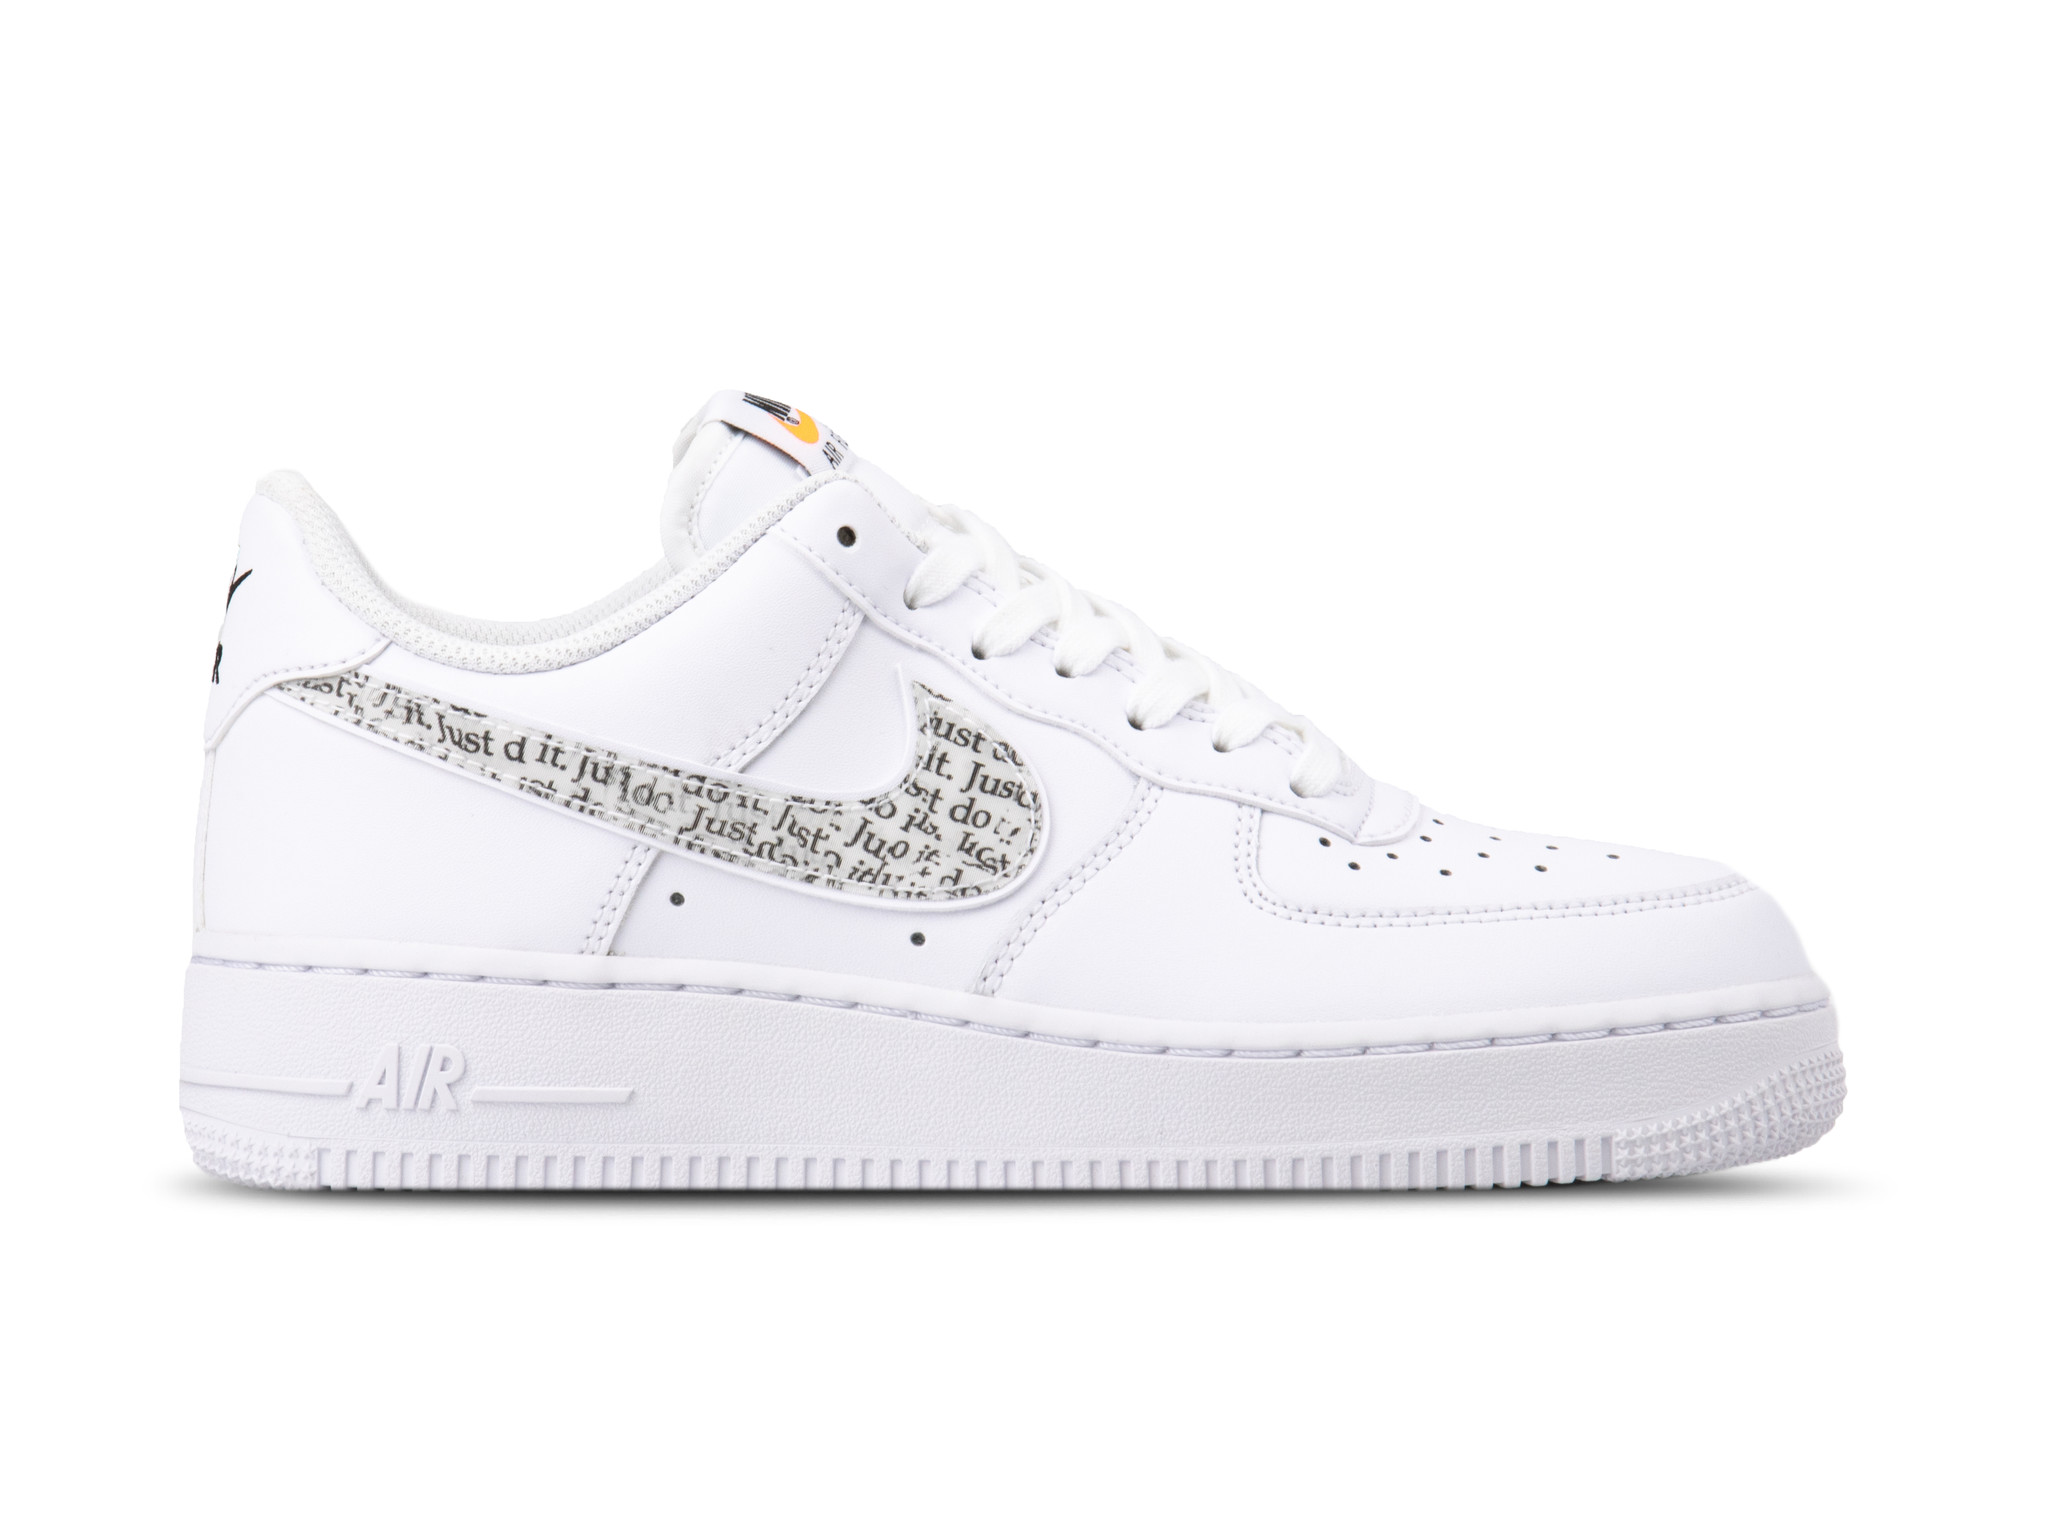 Air Force 1 '07 LV8 JDI LNTC White Black Total Orange BQ5361 100